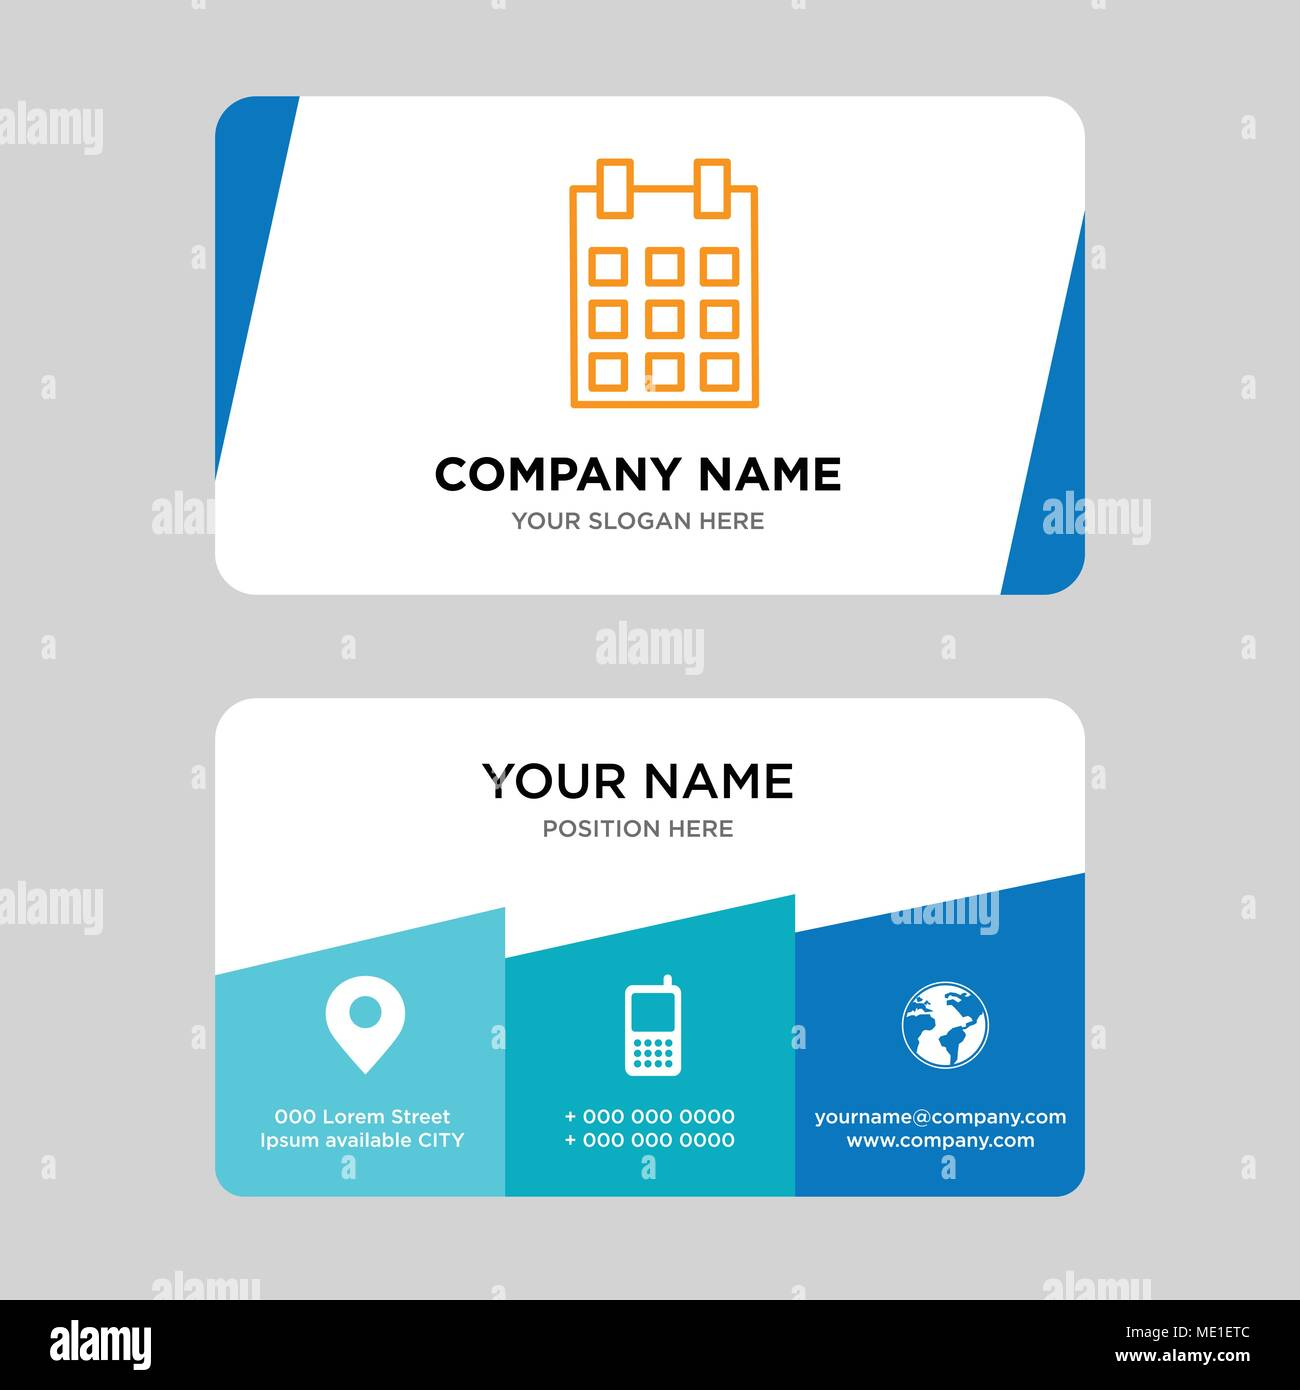 Calendar With Day 5 Business Card Design Template Visiting For Your